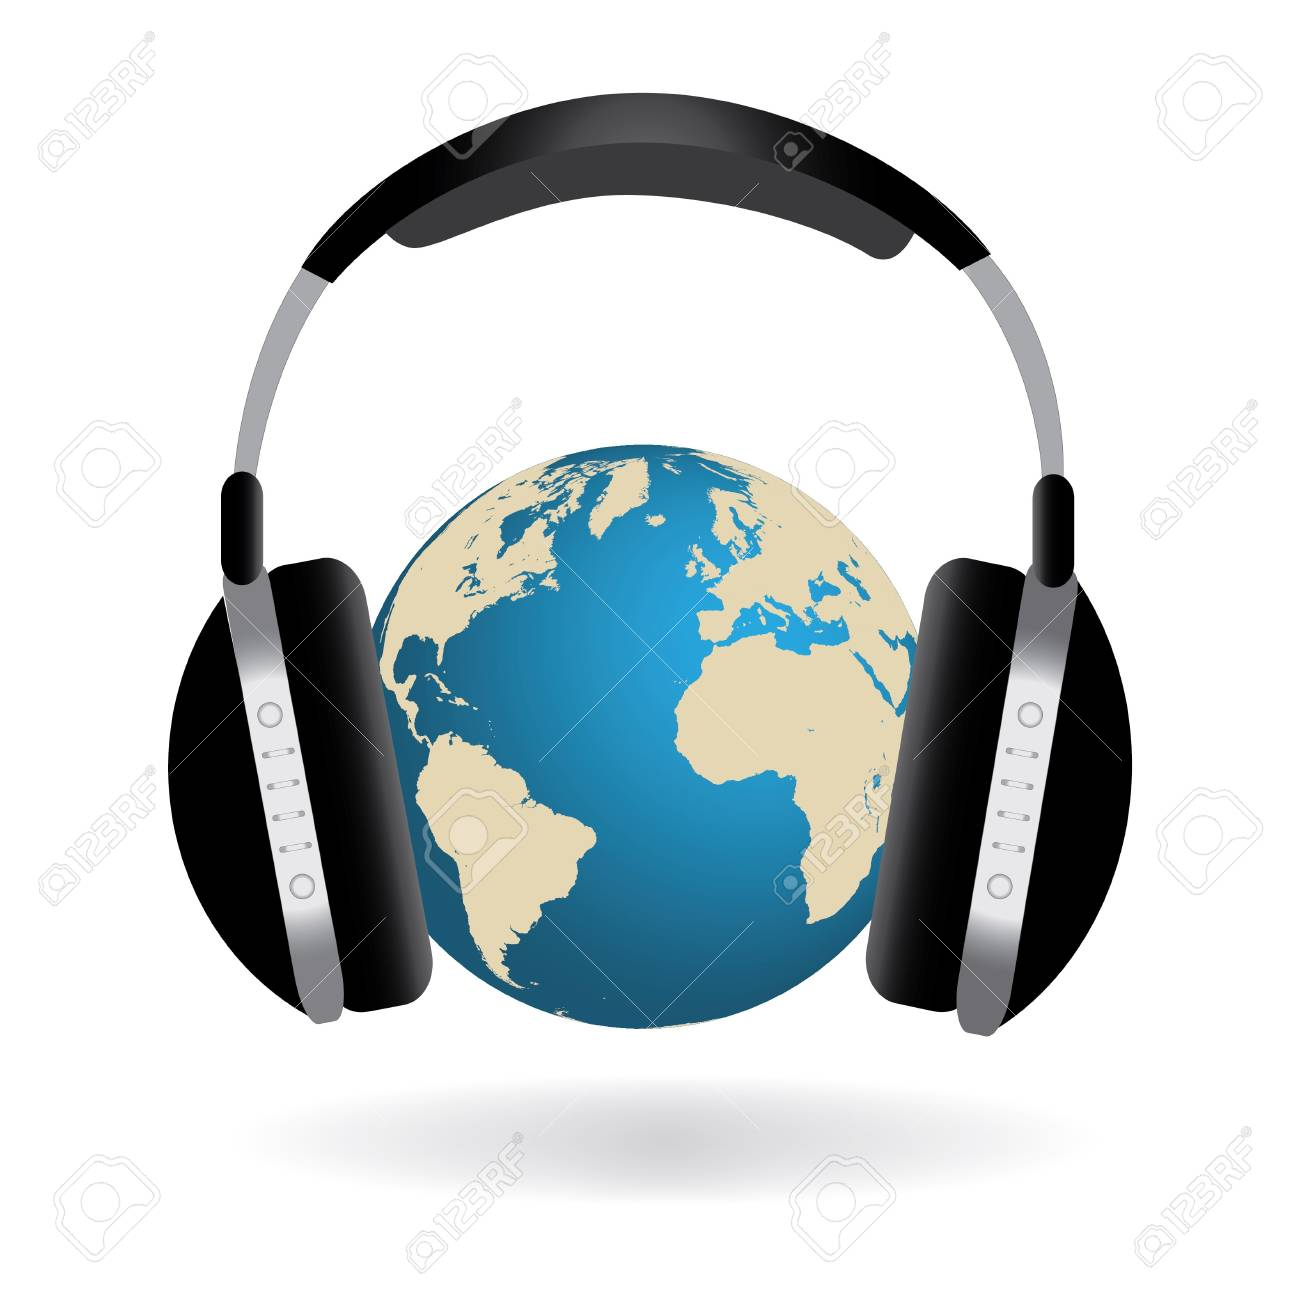 Concept image of the earth with headphones isolated on a white background. Stock Photo - 8855989